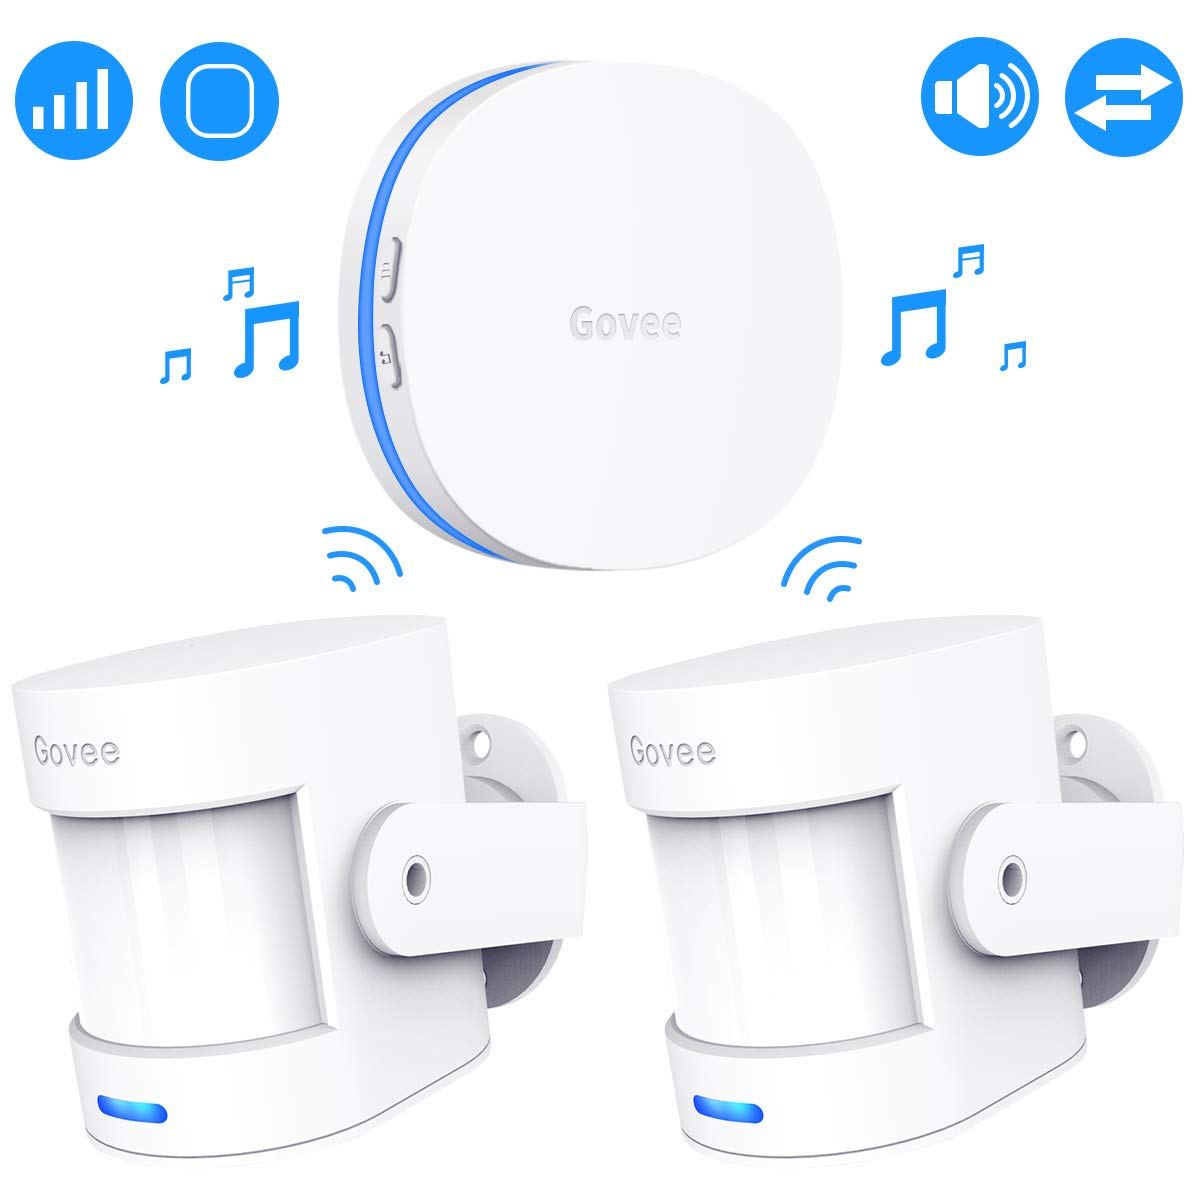 Govee Motion Sensor Alarm, Motion Detector for Home Security Indoor Door Sensor with Alerts, Store Door Detector with 36 Tunes and 5 Adjustable Volumes, 2 PIR Motion Detectors and 1 Plug-in Receiver by Govee